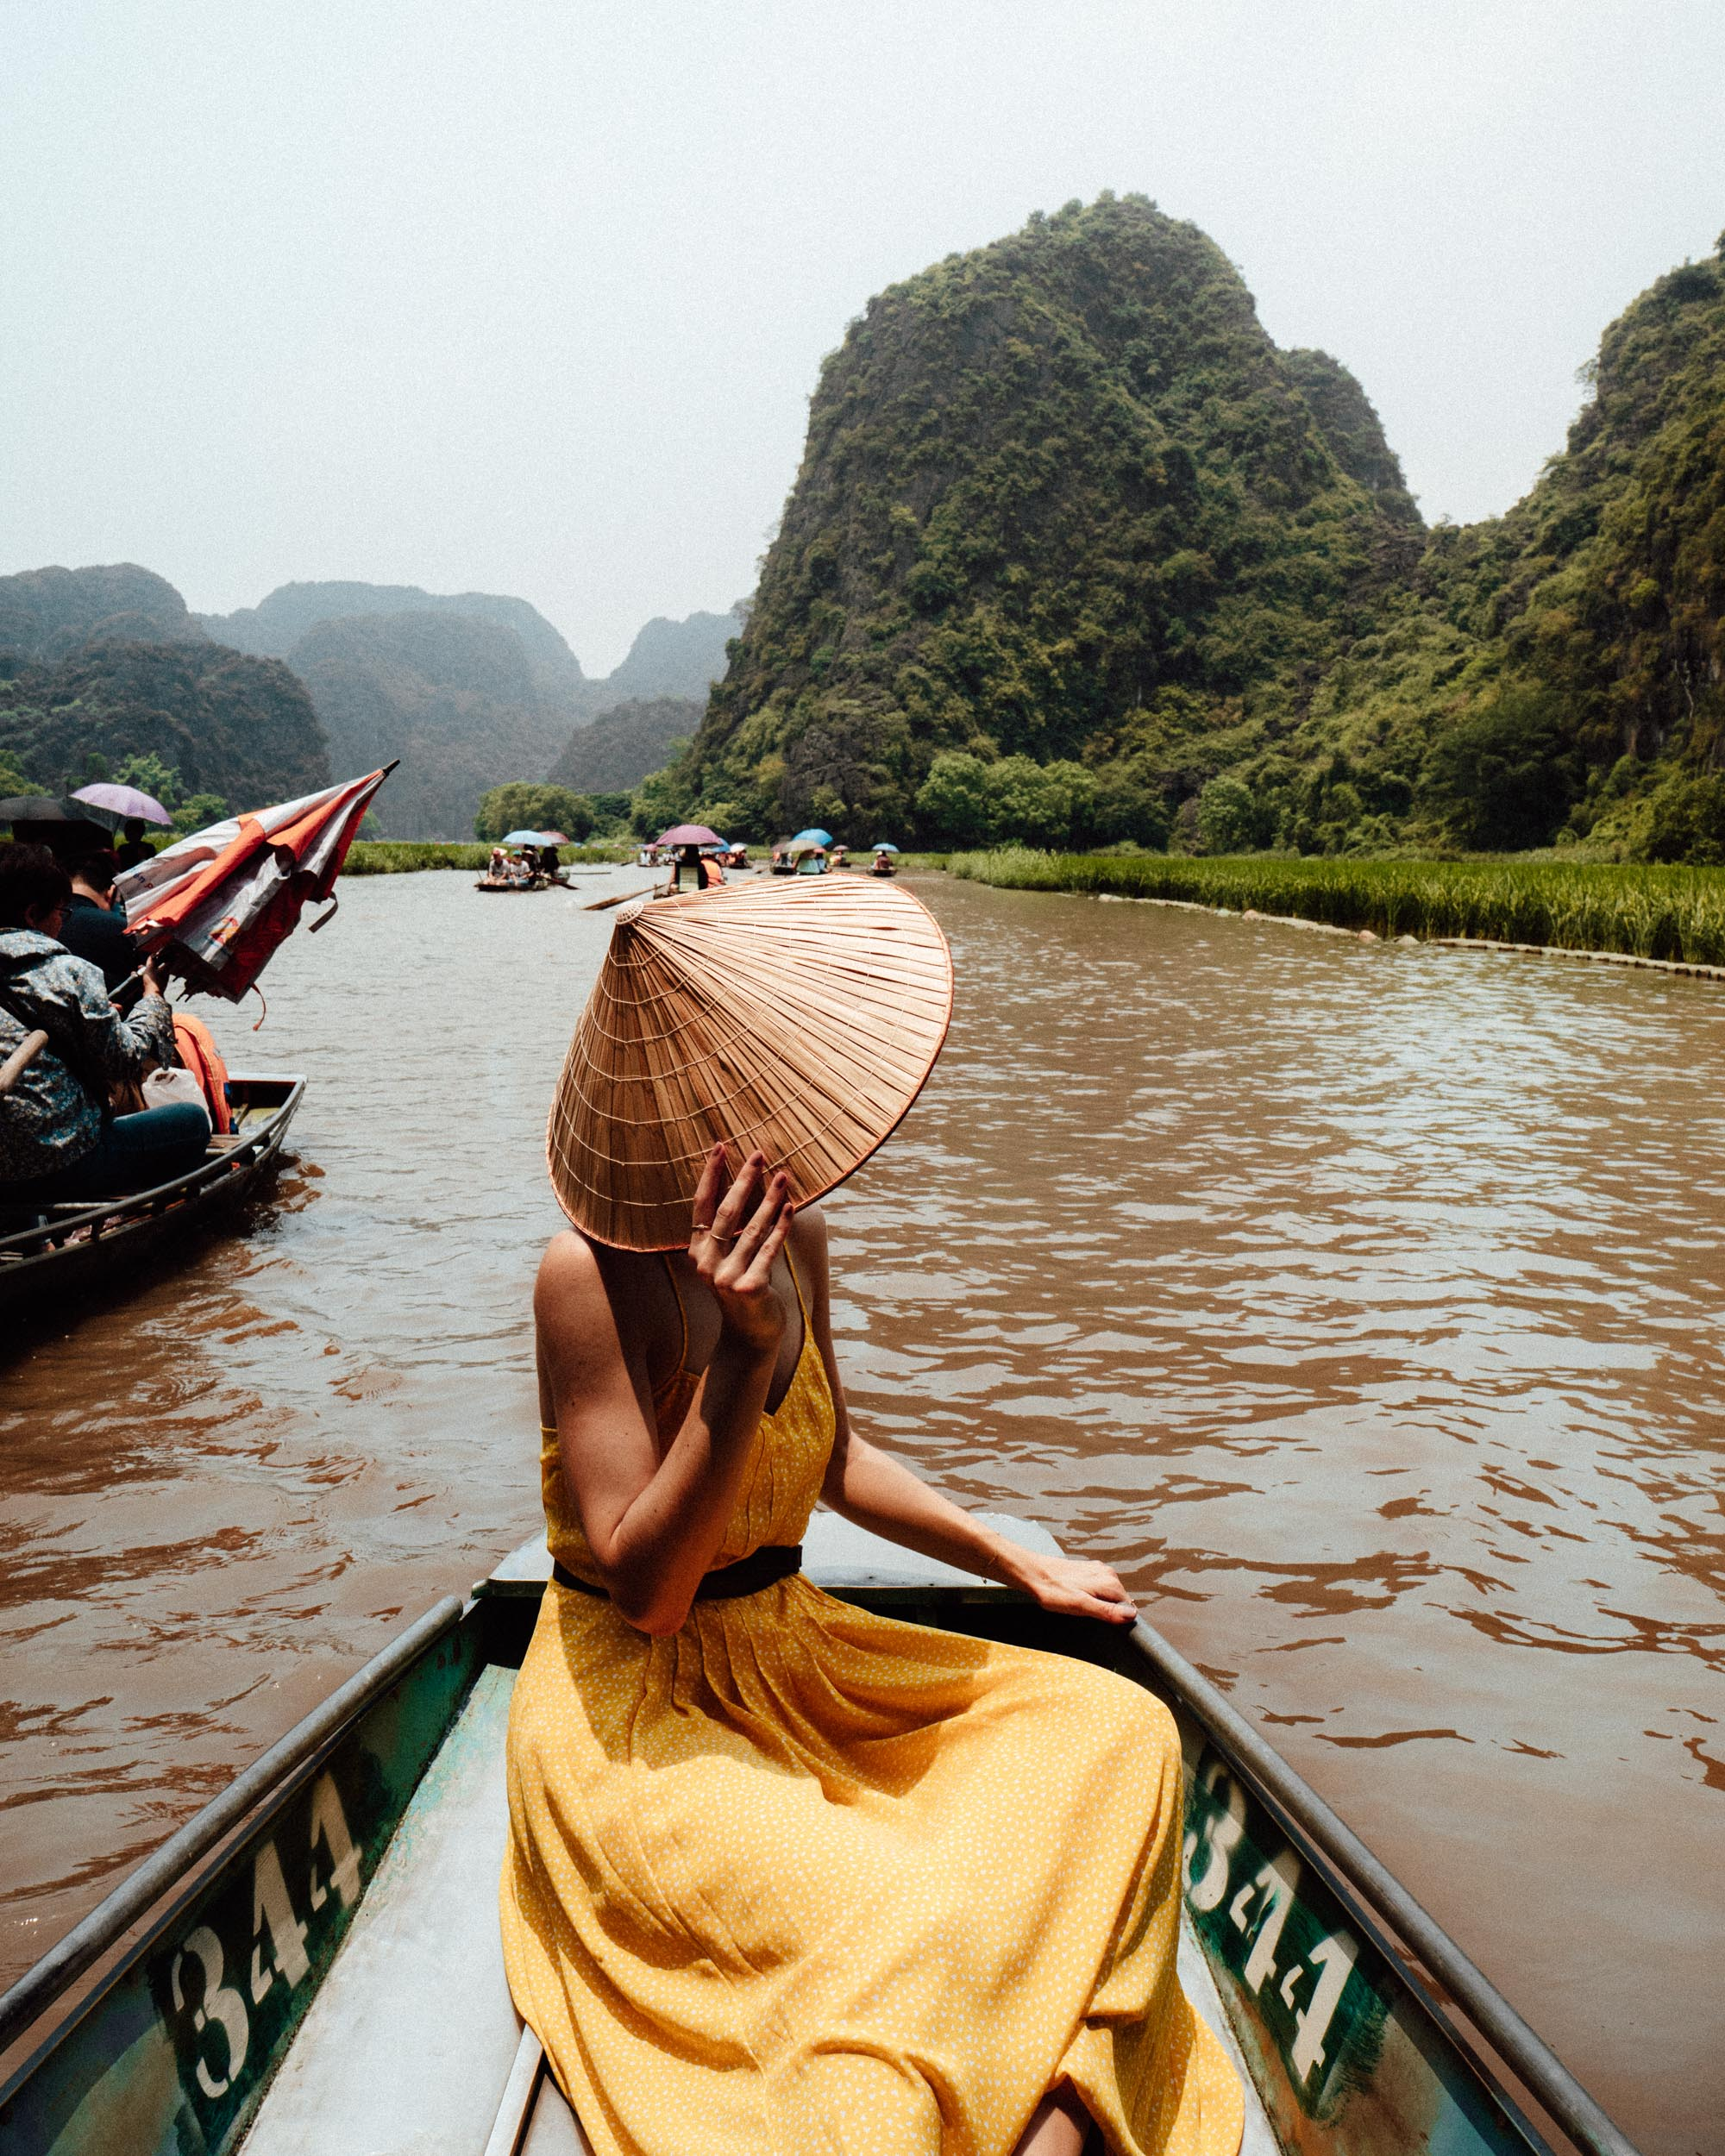 Tam Coc rice fields boat ride in Ninh Binh Vietnam